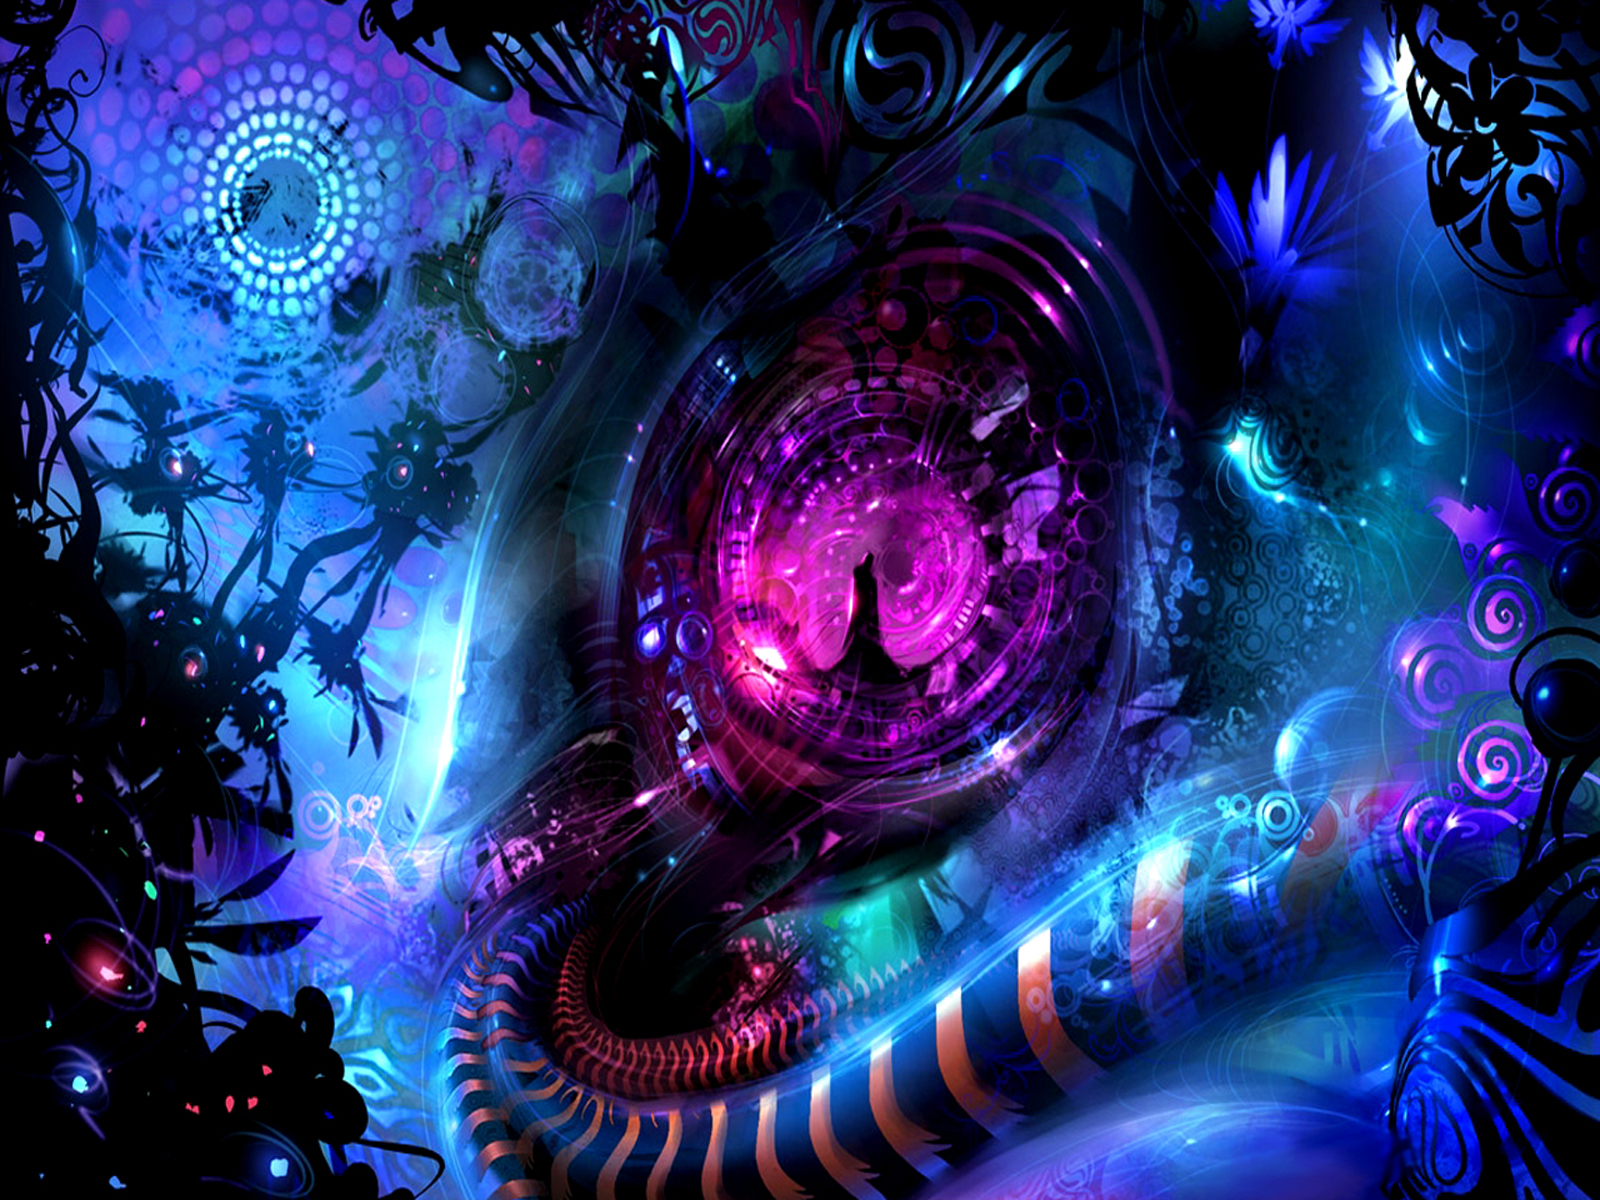 New Art Funny Wallpapers Jokes Sci Fi Abstract Wallpapers Full HD 1600x1200